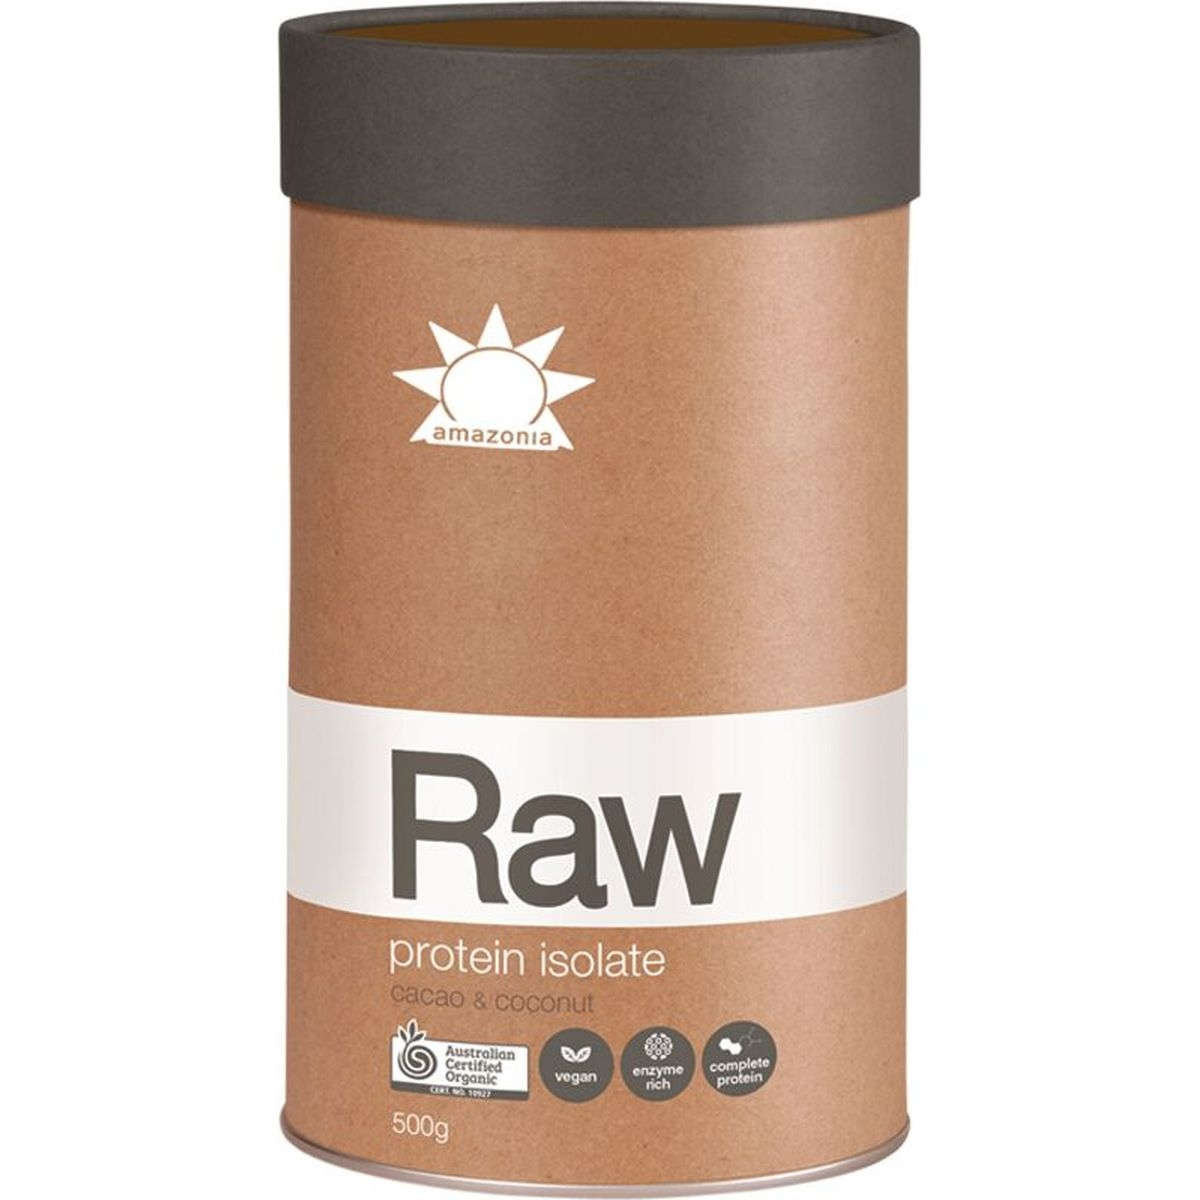 Raw Protein Isolate (Cacao & Coconut) 500g